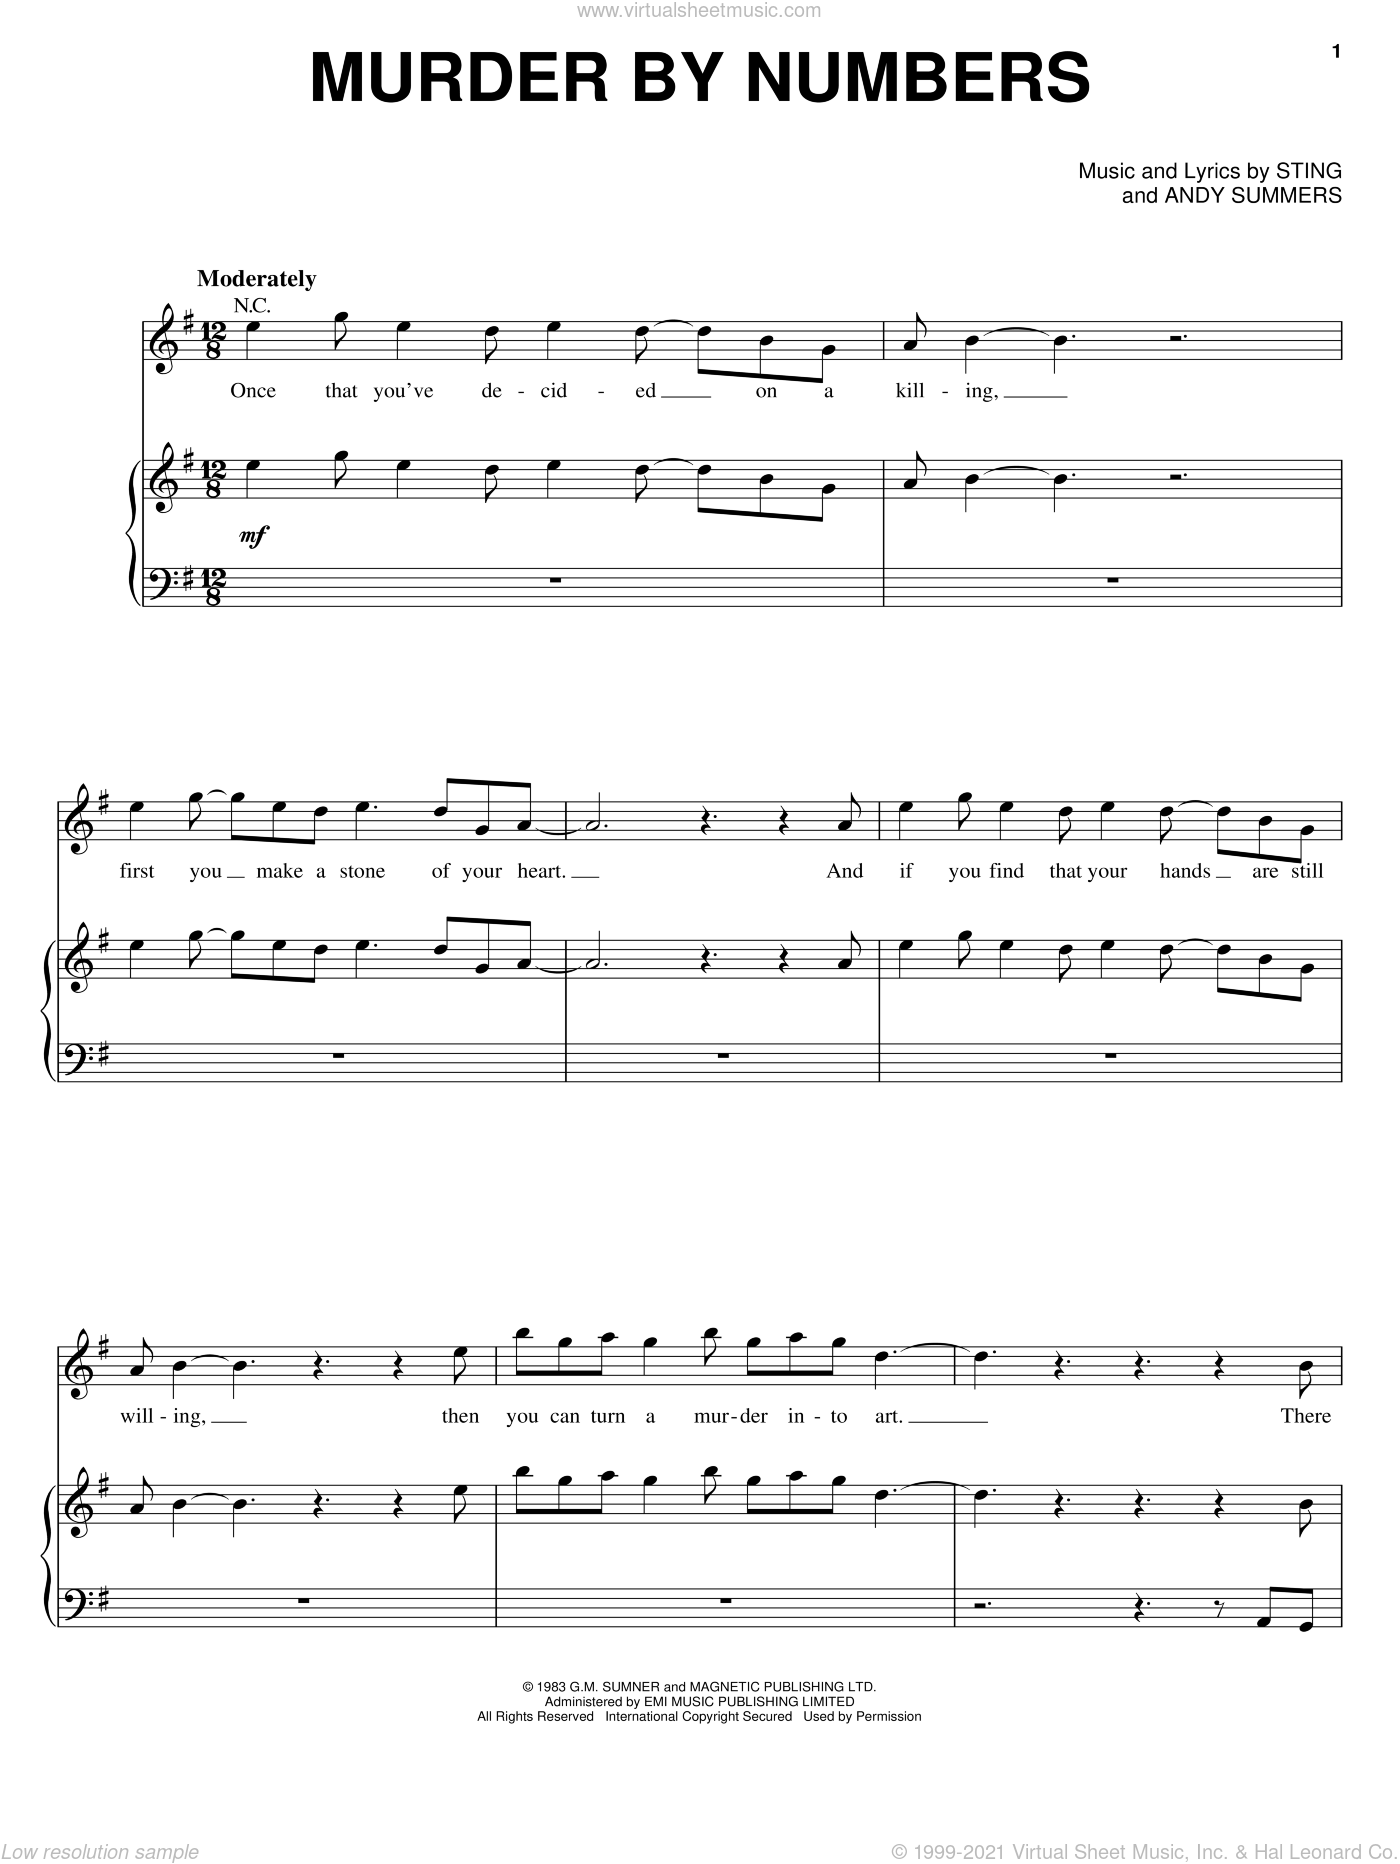 Murder By Numbers sheet music for voice, piano or guitar by The Police, Andy Summers and Sting, intermediate skill level